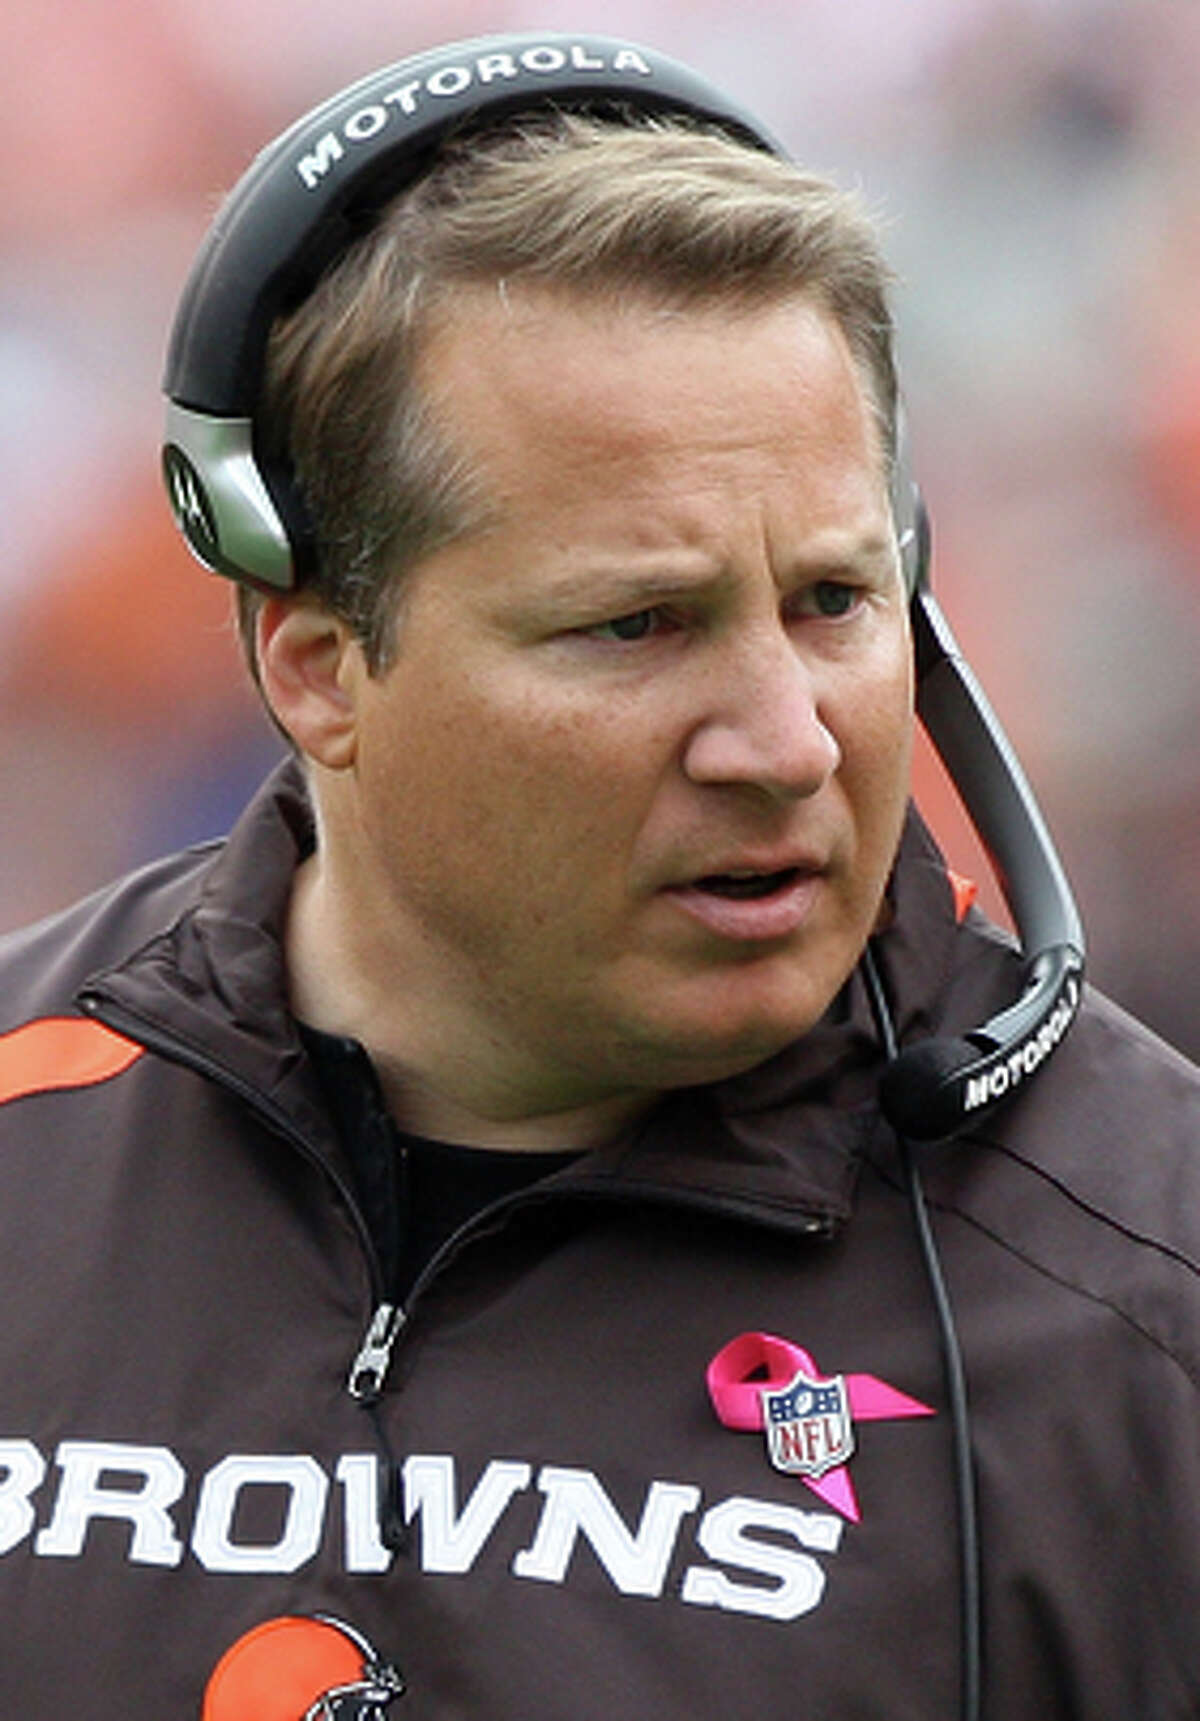 CLEV ELAND - OCTOBER 04: Head coach Eric Mangini of the Cleveland Browns looks on against the Cincinnati Bengals during their game at Cleveland Browns Stadium on October 4, 2009 in Cleveland, Ohio. (Photo by Jim McIsaac/Getty Images)